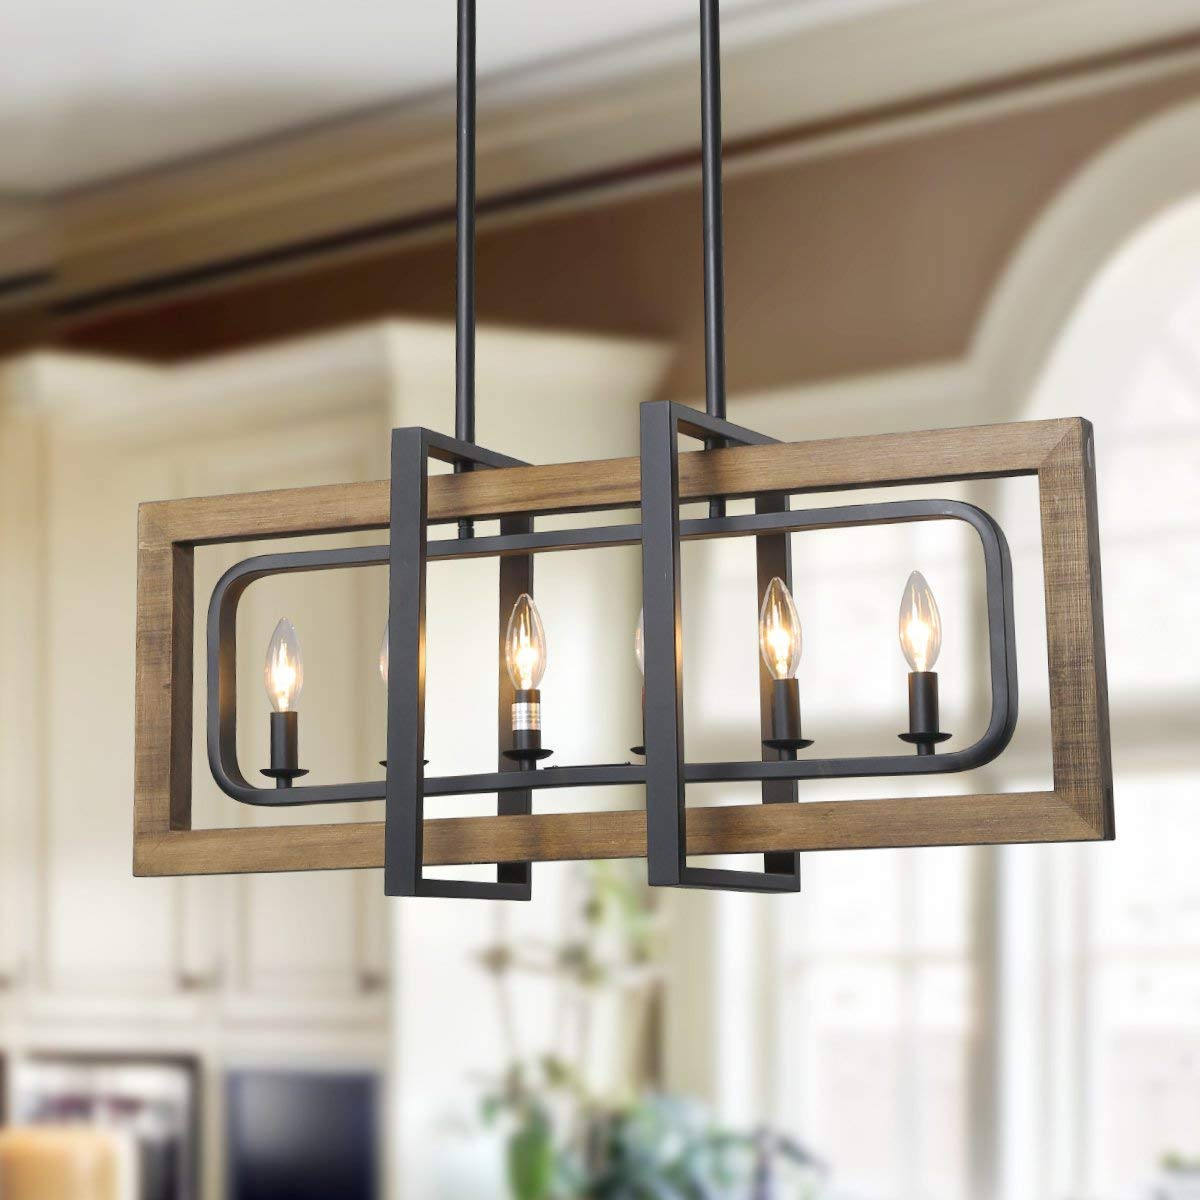 LOG BARN 6 Lights Farmhouse Island Pendant Chandelier in Distressed Wood and Matte Black Metal Finish, 31.5'' Large Kitchen Light Fixture, A03429